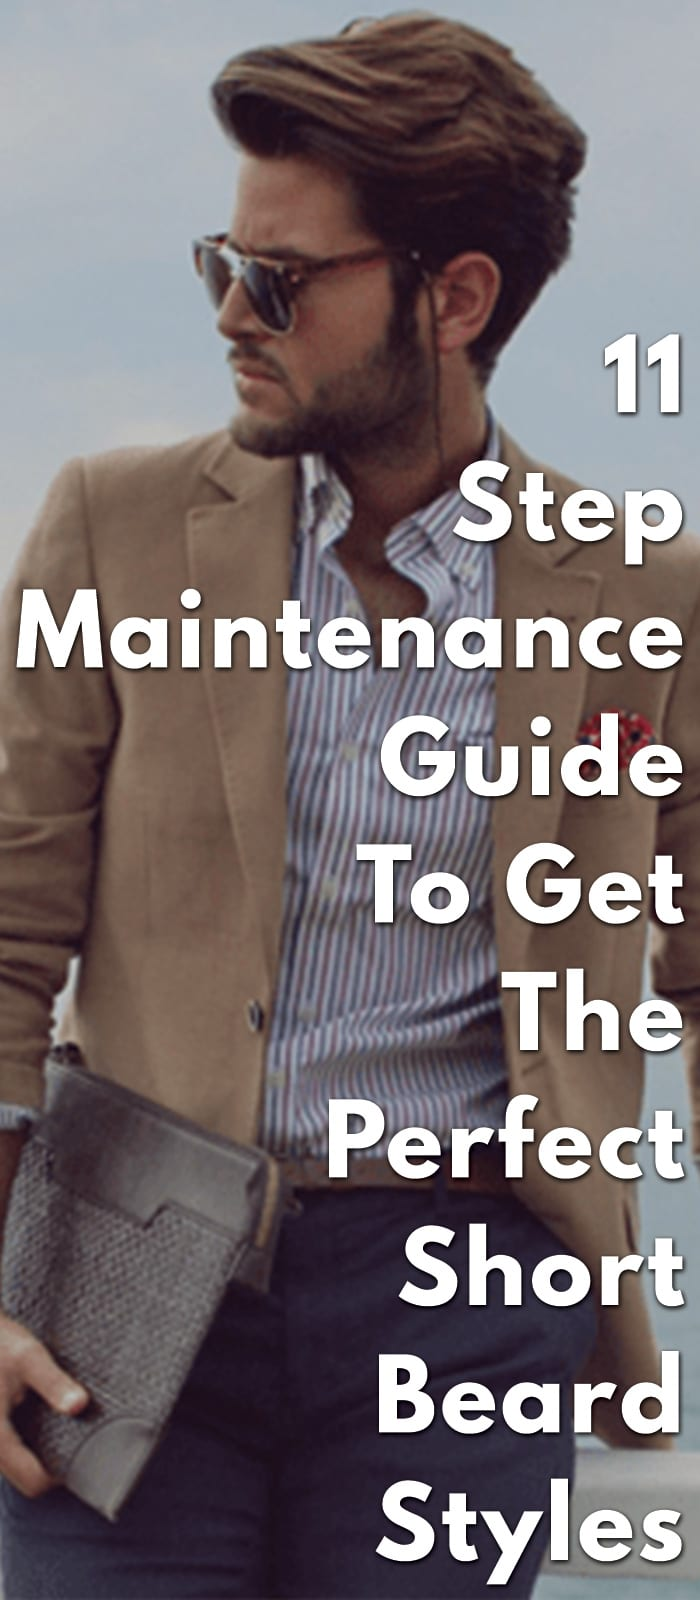 11-Step-Maintenance-Guide-To-Get-The-Perfect-Short-Beard-Styles